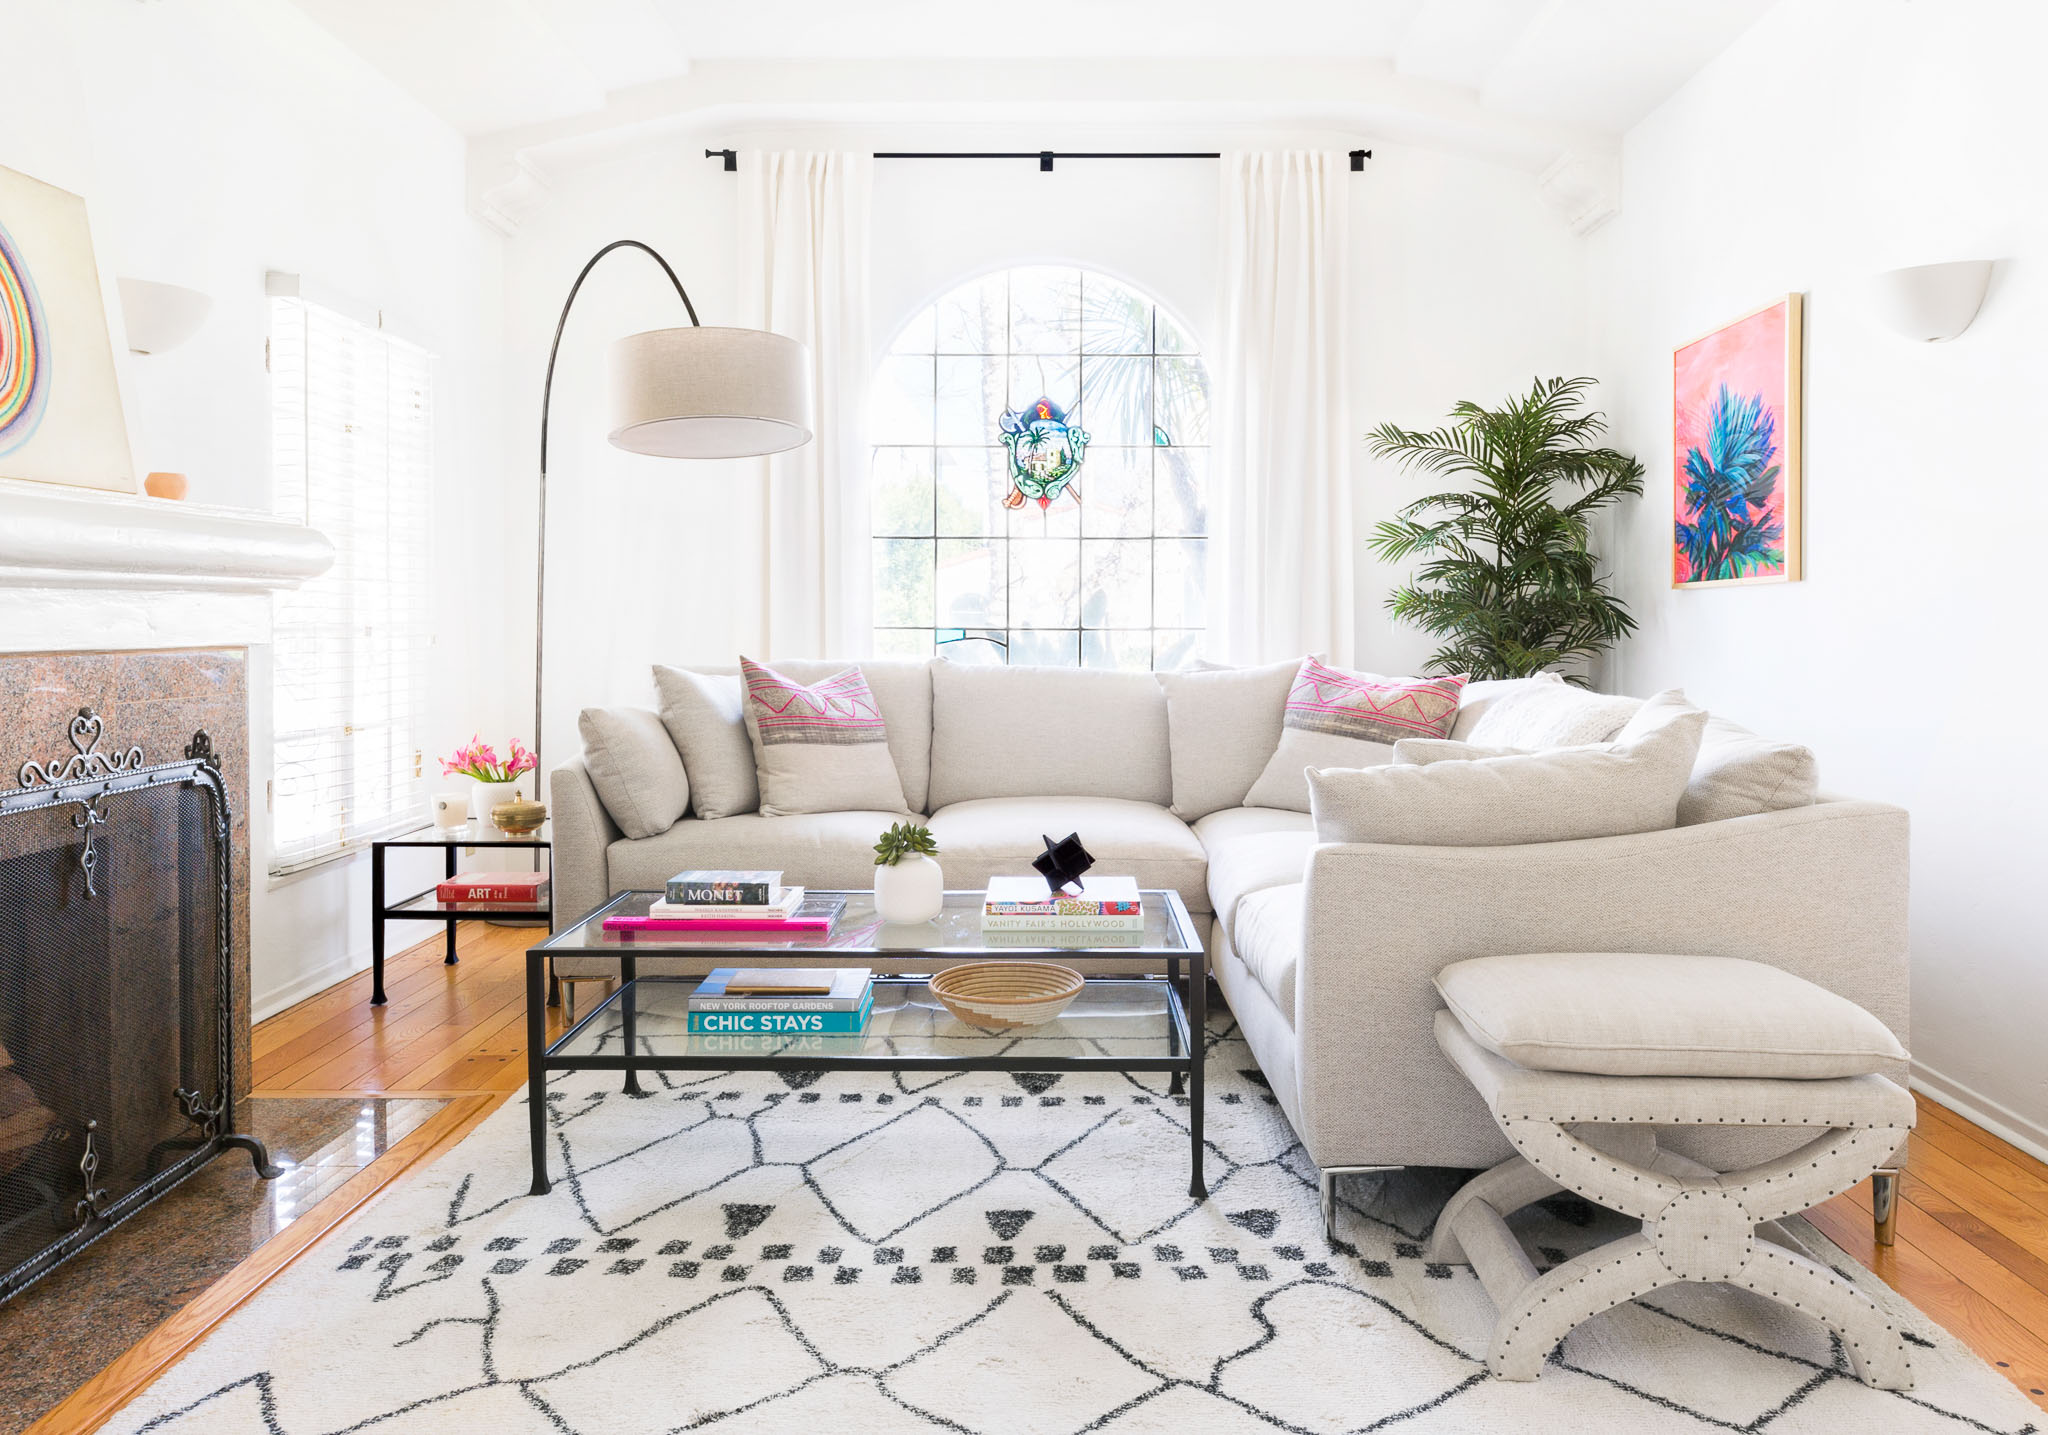 PureWow - Women's lifestyle experts for making life easier, more interesting and of course, more beautiful, PureWow asks Los Angeles based Interior Designer Kerry Vasquez to share her predictions for Interior Design trends in 2019.